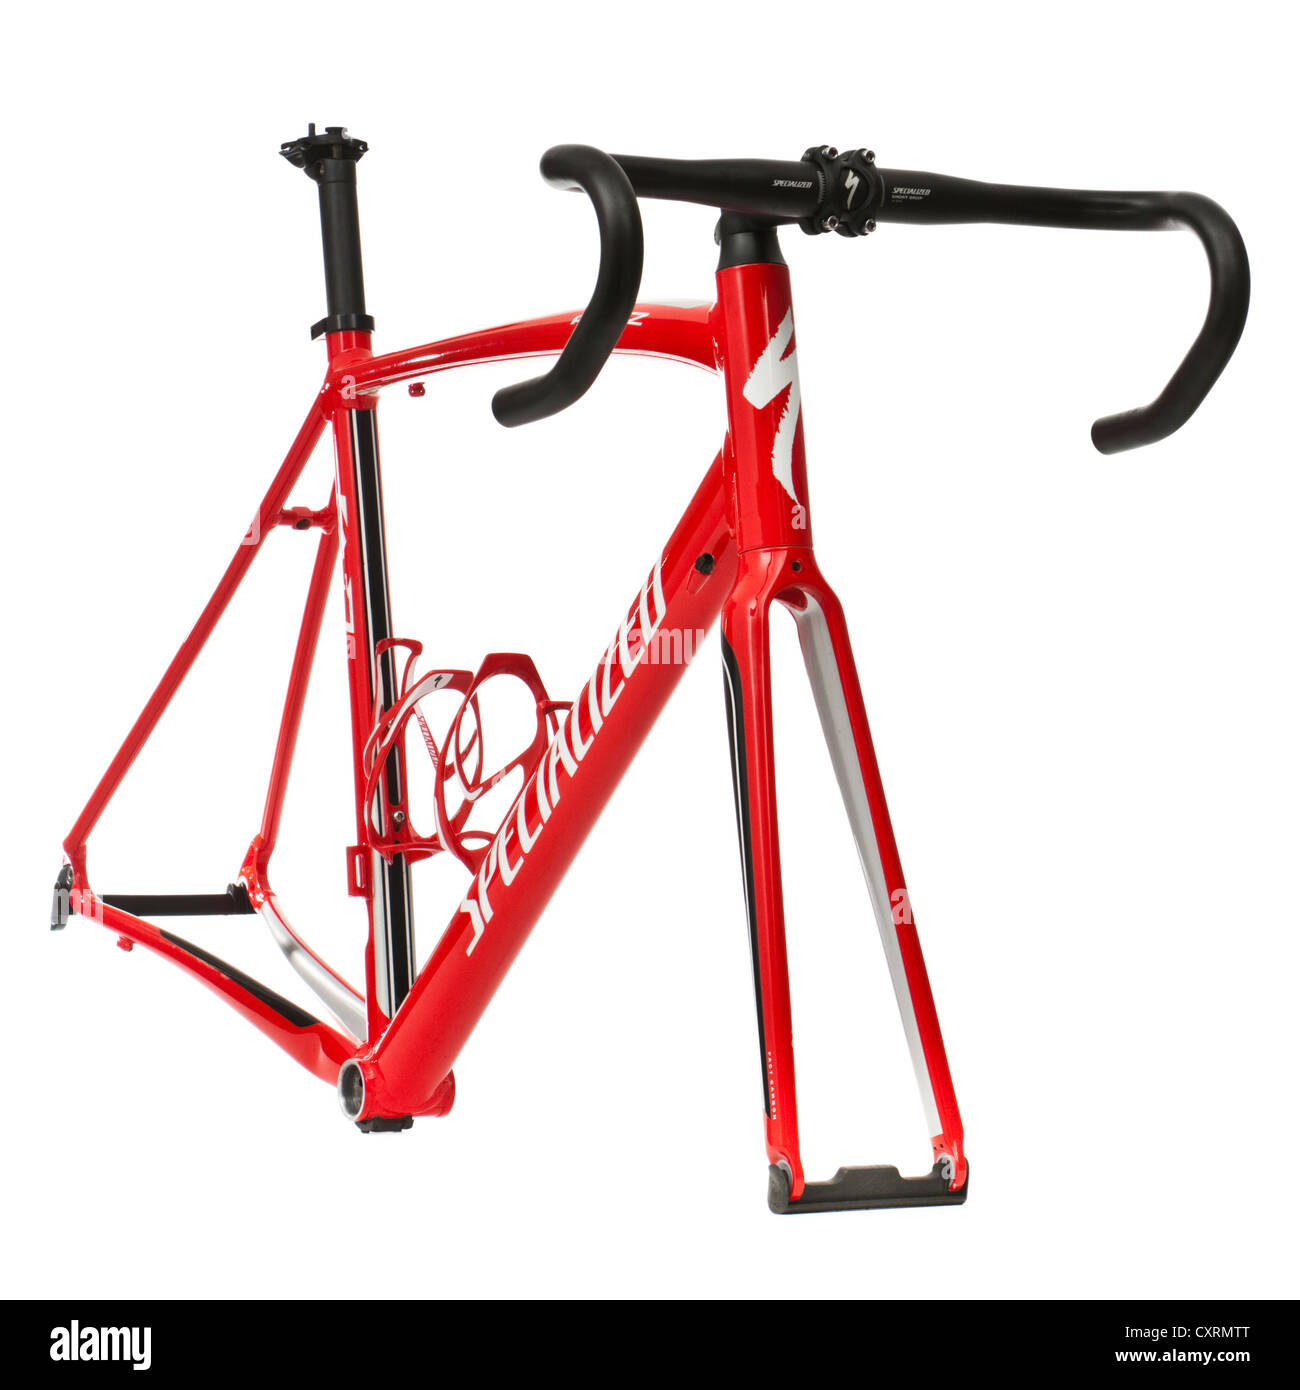 2011 Specialized \'Allez\' road racing bicycle frame Stock Photo ...